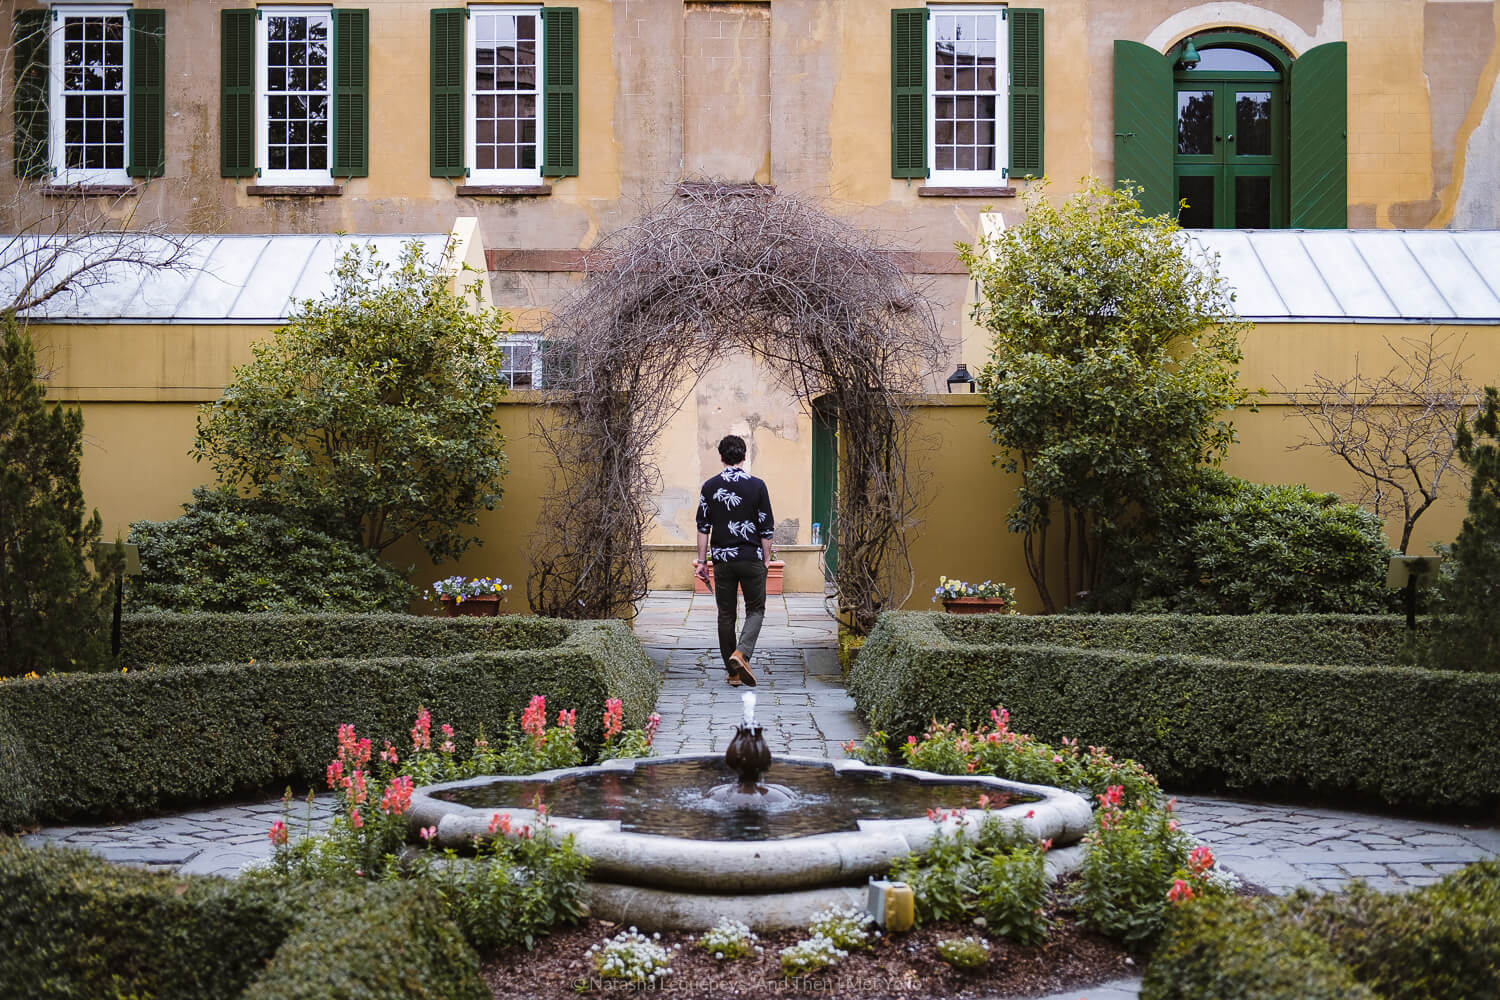 """The gardens at the Thomas-Owens house and slave quarters. Travel photography and guide by © Natasha Lequepeys for """"And Then I Met Yoko"""". #savannah #usa #travelphotography #travelguide #travelblog"""